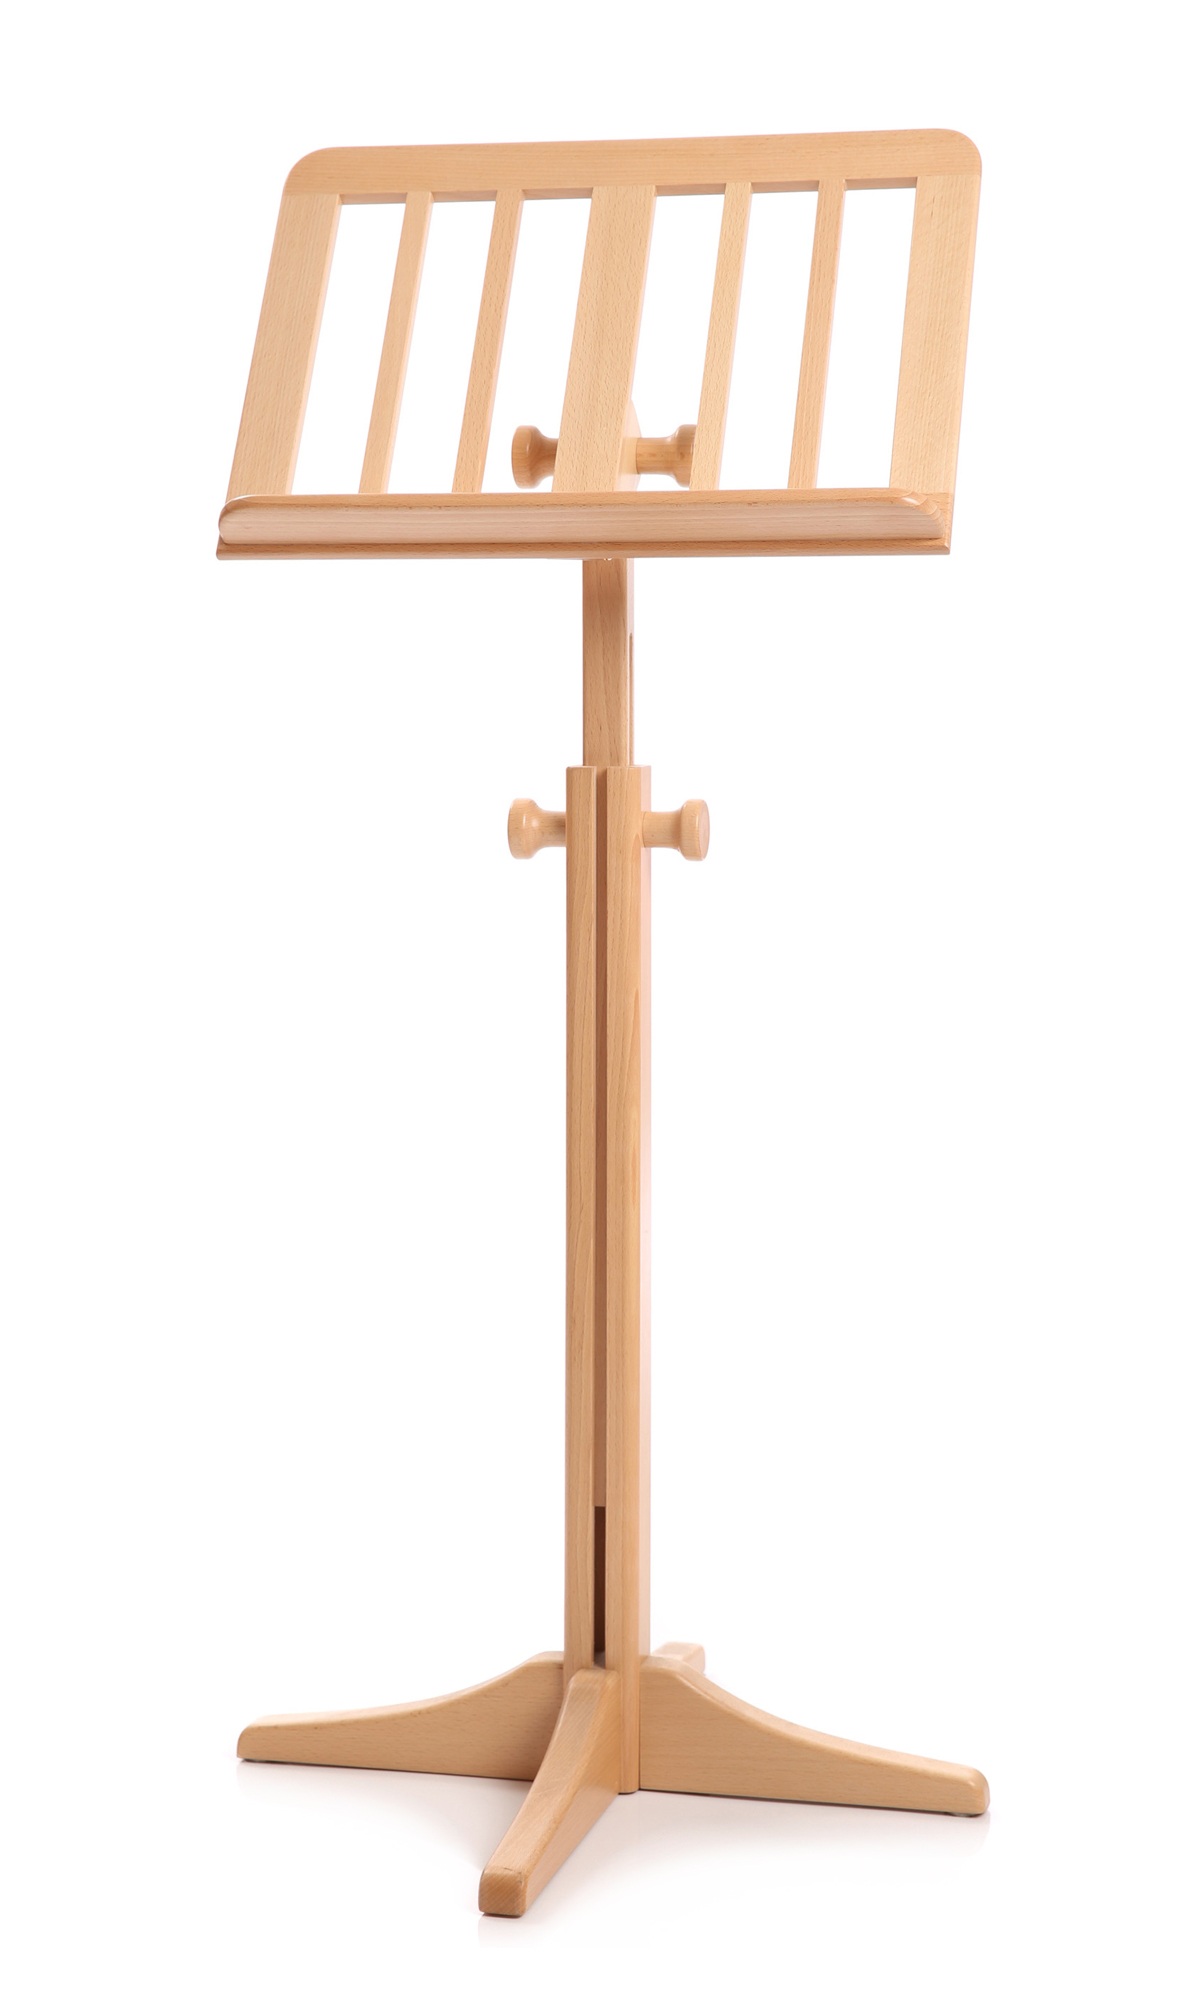 Wooden sheet music stand